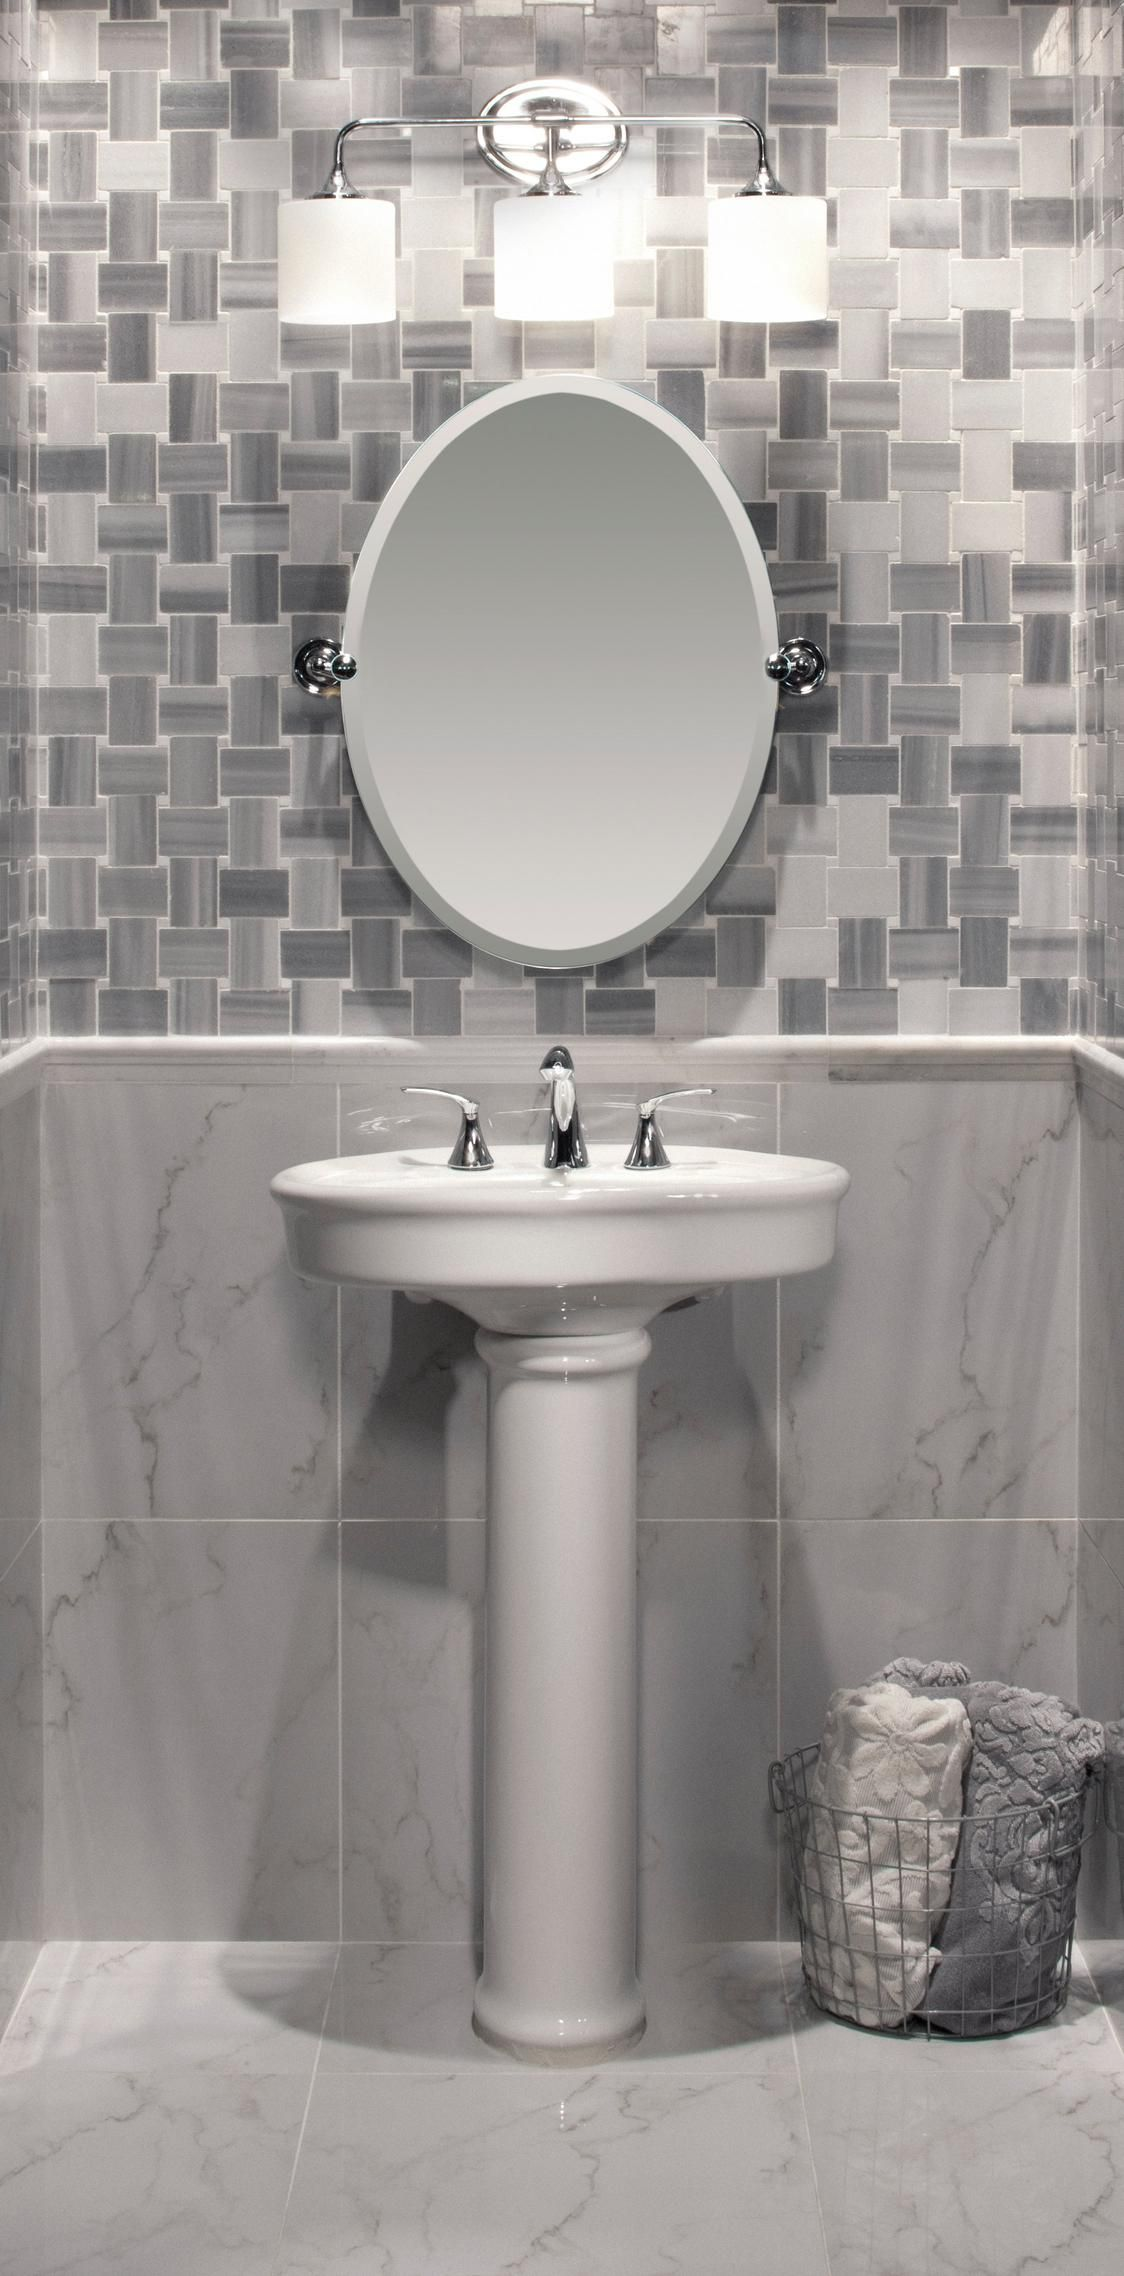 Pedestal Sinks U0026 Mirrors Promote Spaciousness With Functionality. Tile  Floor Going